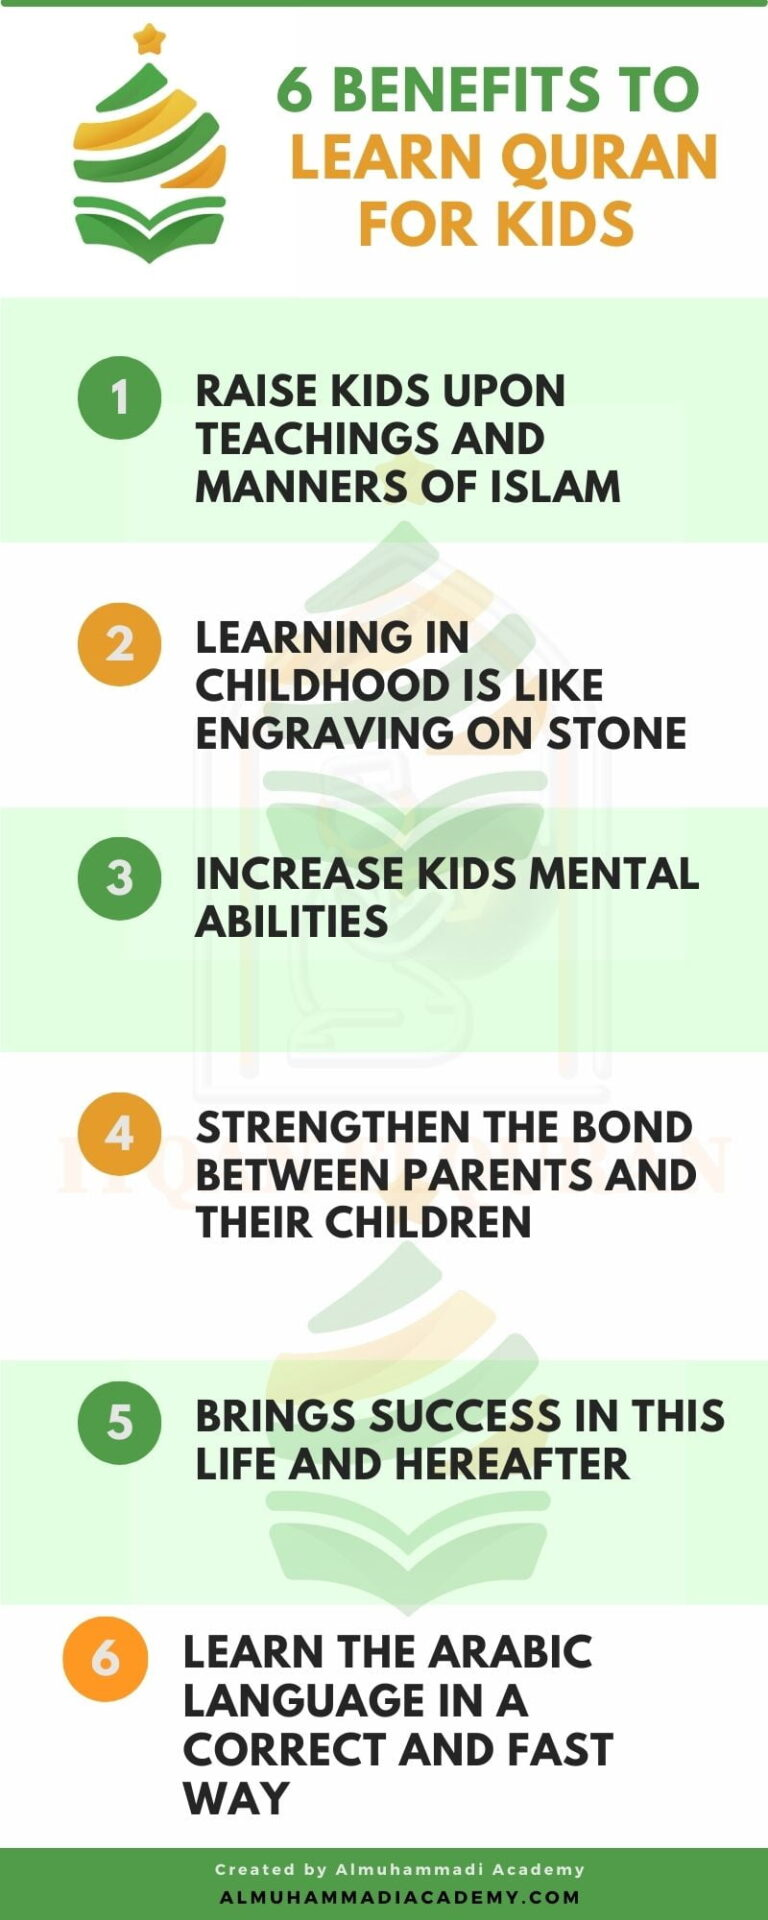 6 Benefits of Learn Quran for Kids (infographic) - Almuhammadi Academy